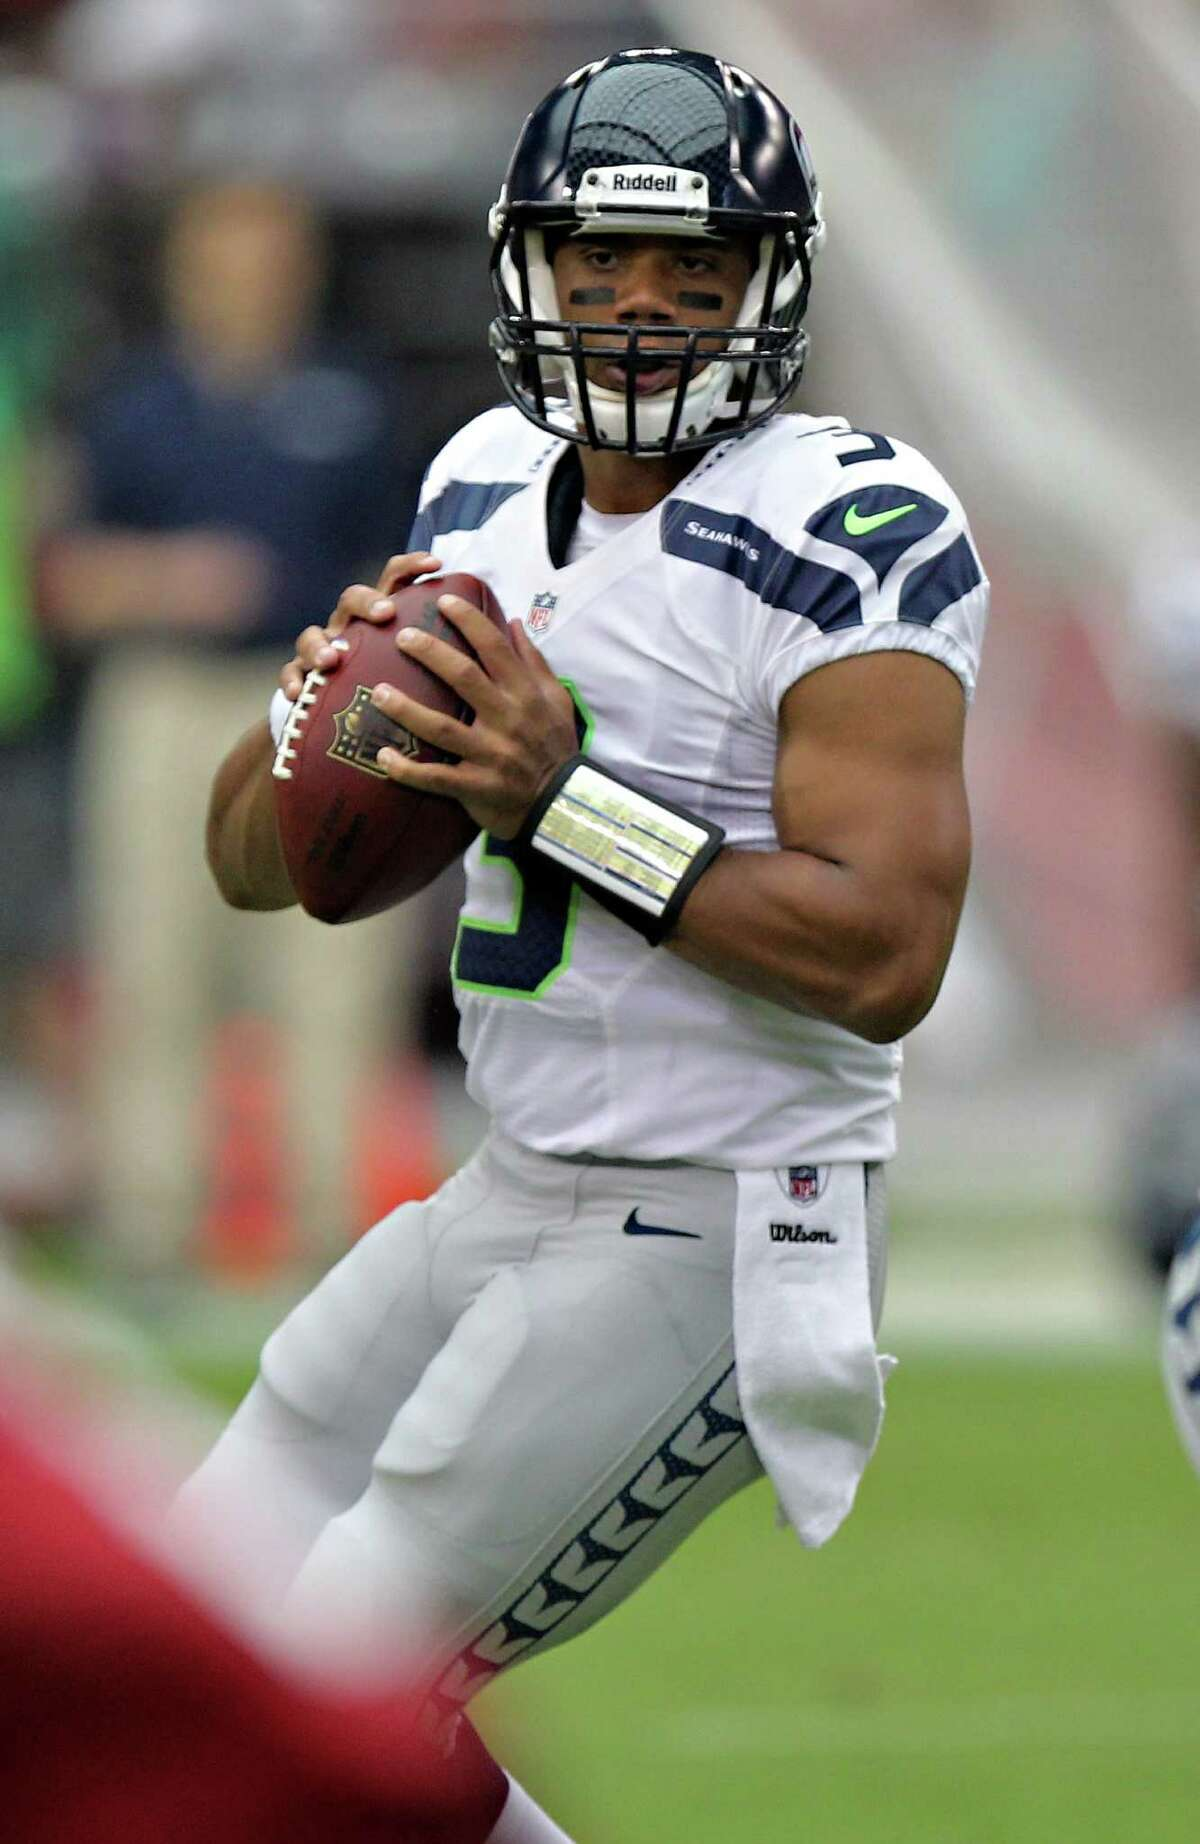 Seattle Seahawks quarterback Russell Wilson (3) drops back to pass against the Arizona Cardinals during the first half of an NFL football game, Sunday, Sept. 9, 2012,in Glendale, Ariz.